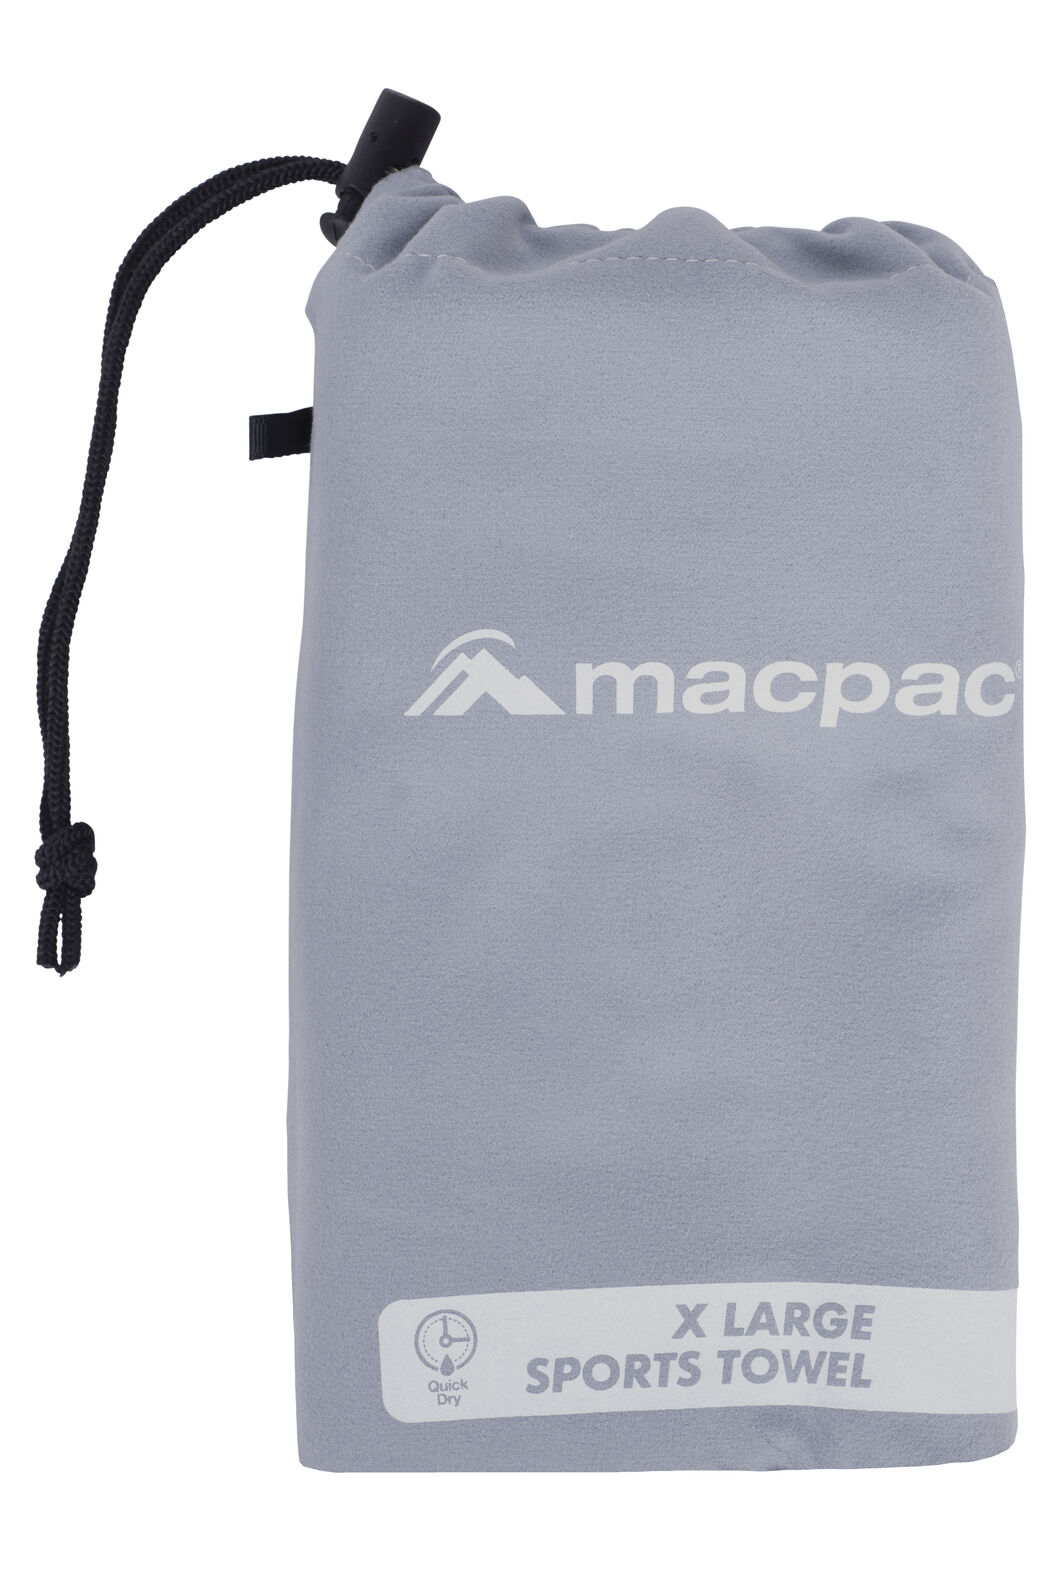 Macpac Sports Towel XL, Charcoal, hi-res